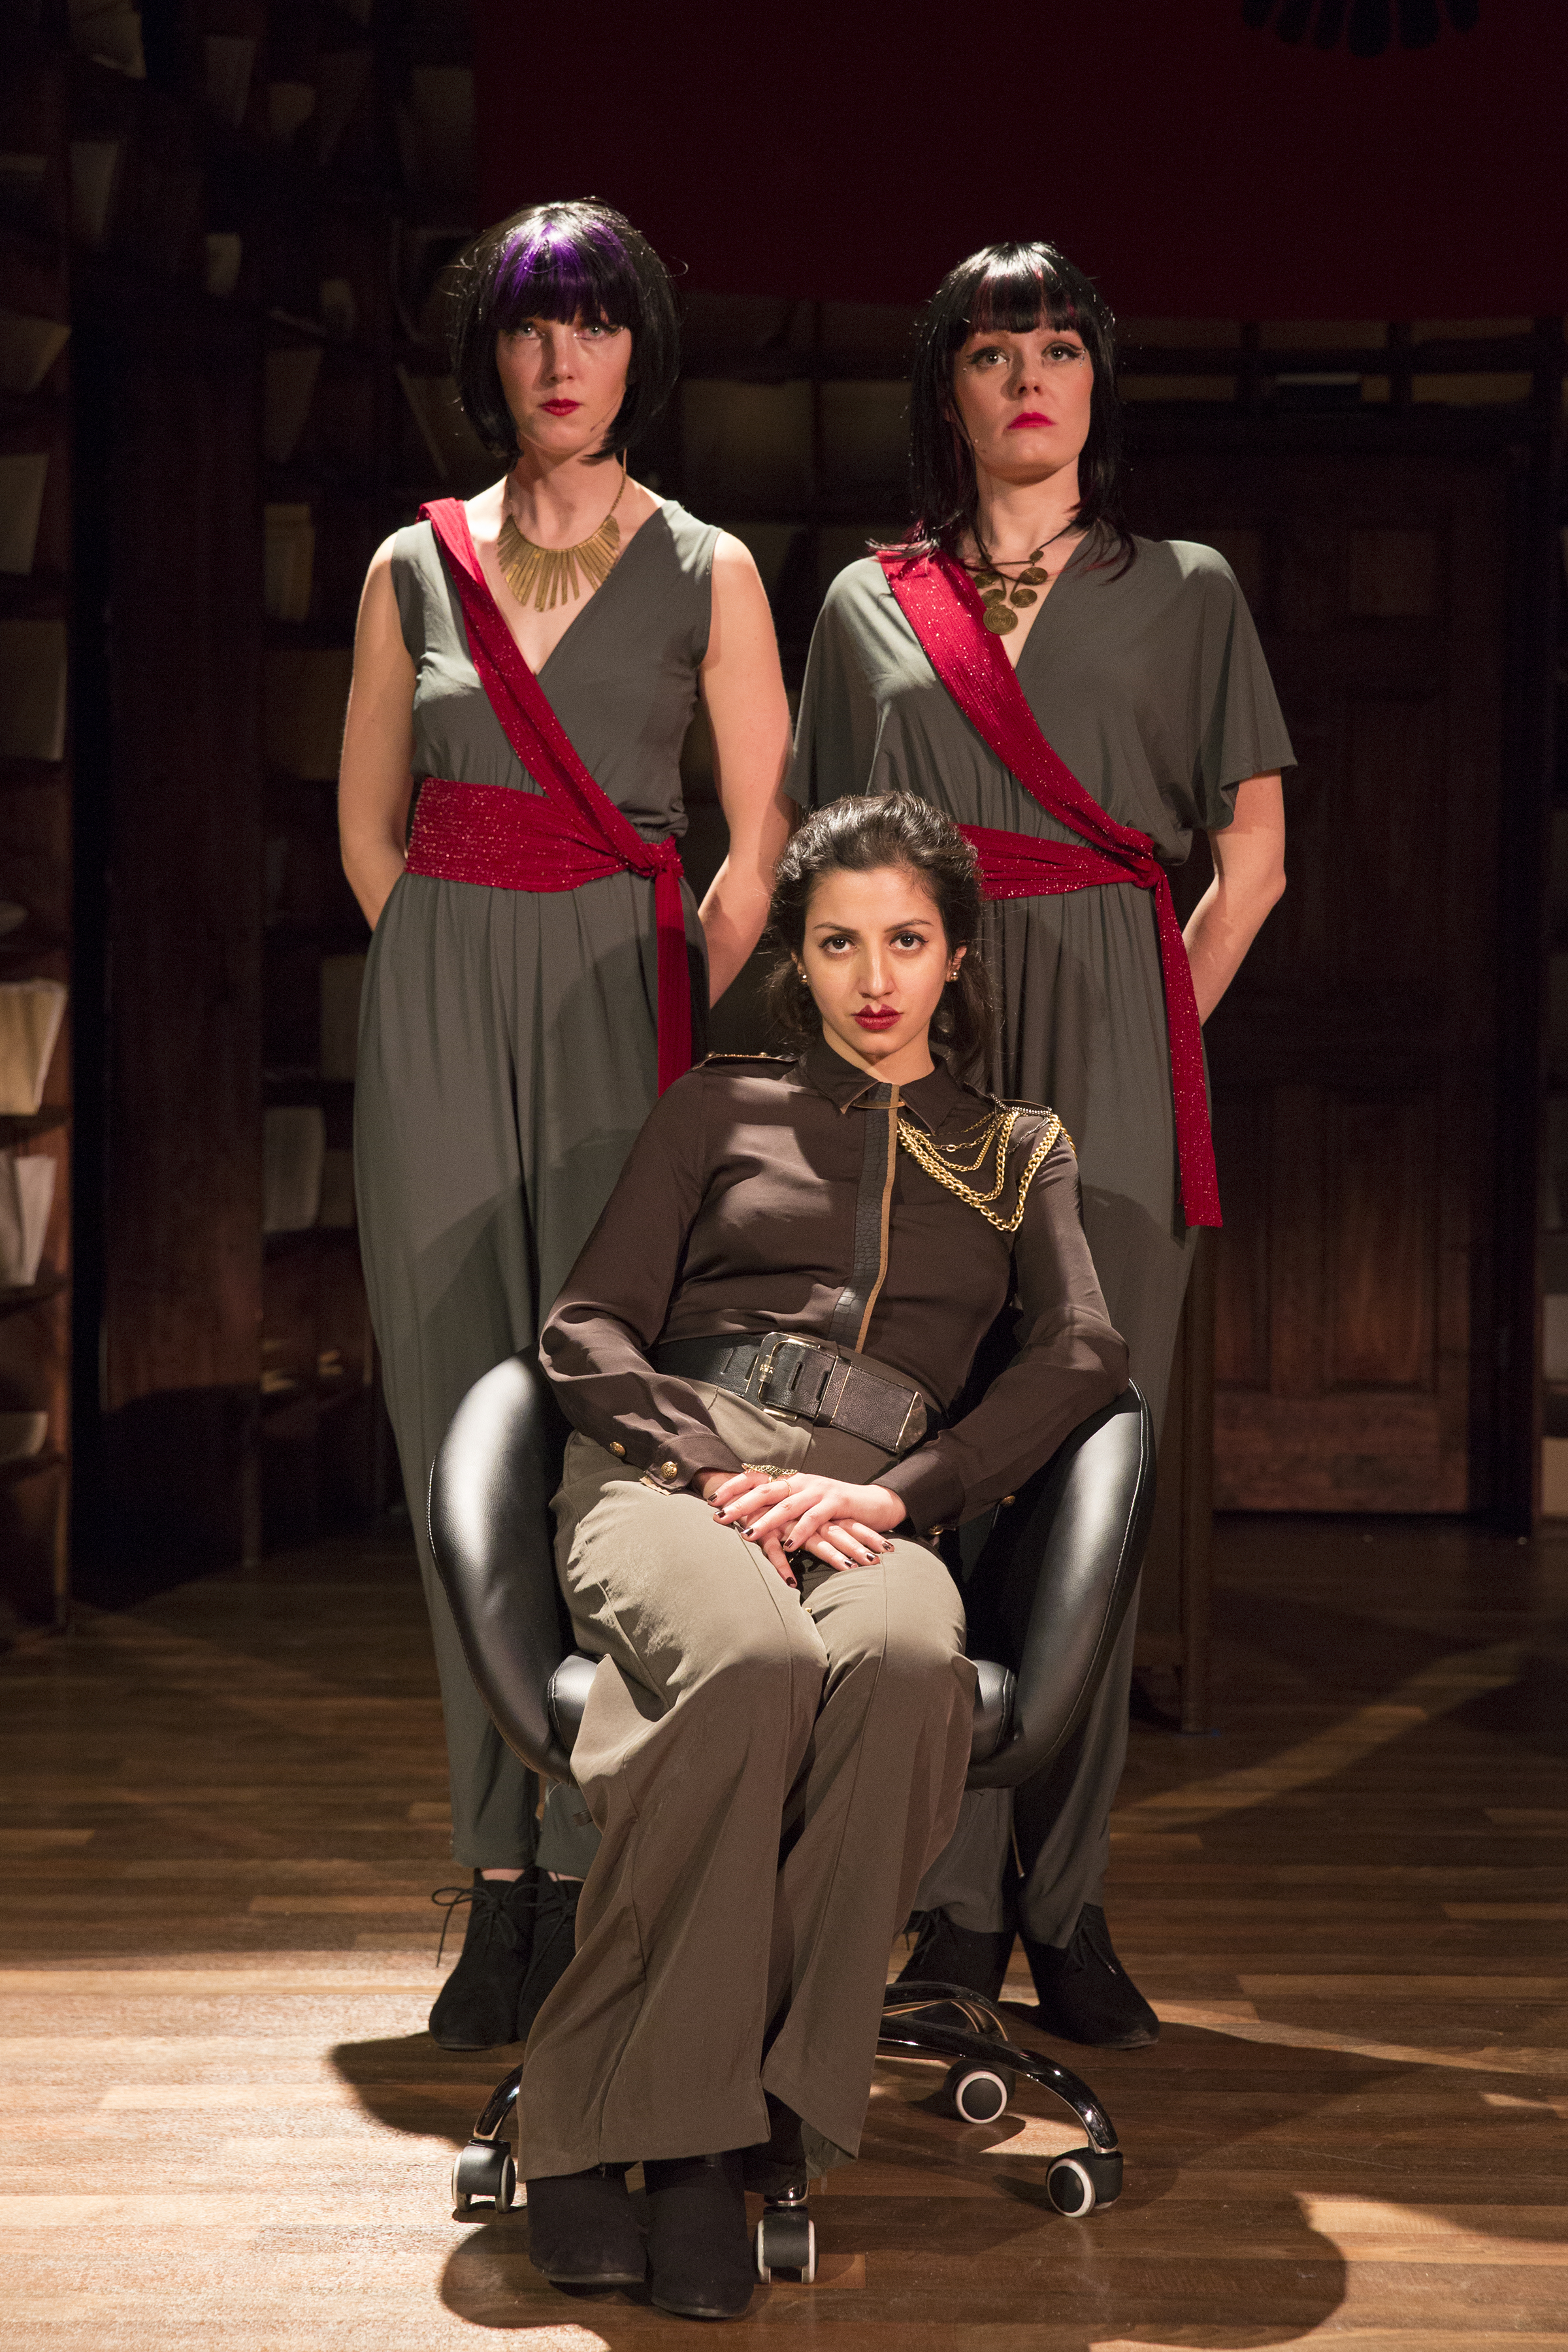 From L to R: Alaina Ferris, Catherine Brookman. Front: Layla Khoshnoudi  Photo by Richard Termine